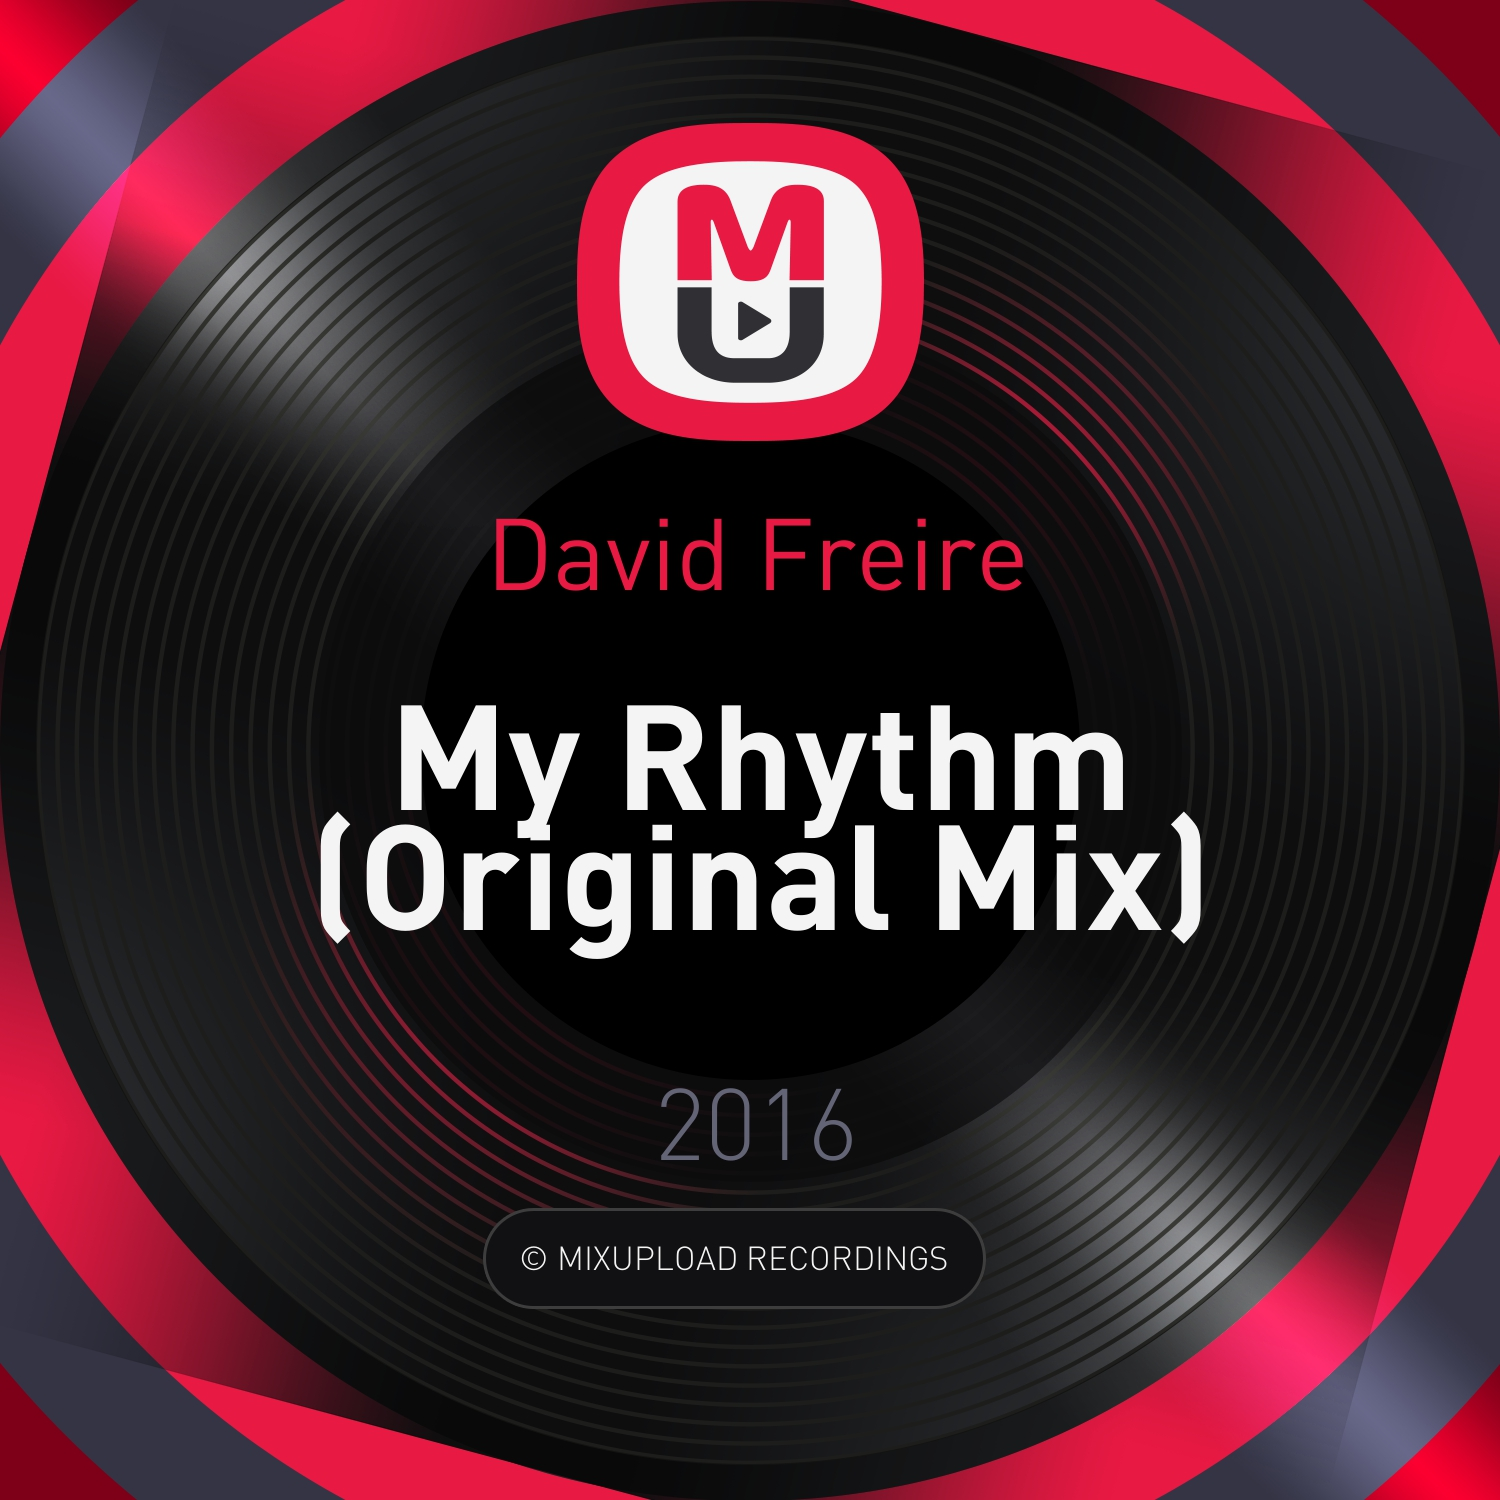 David Freire - My Rhythm (Original Mix)